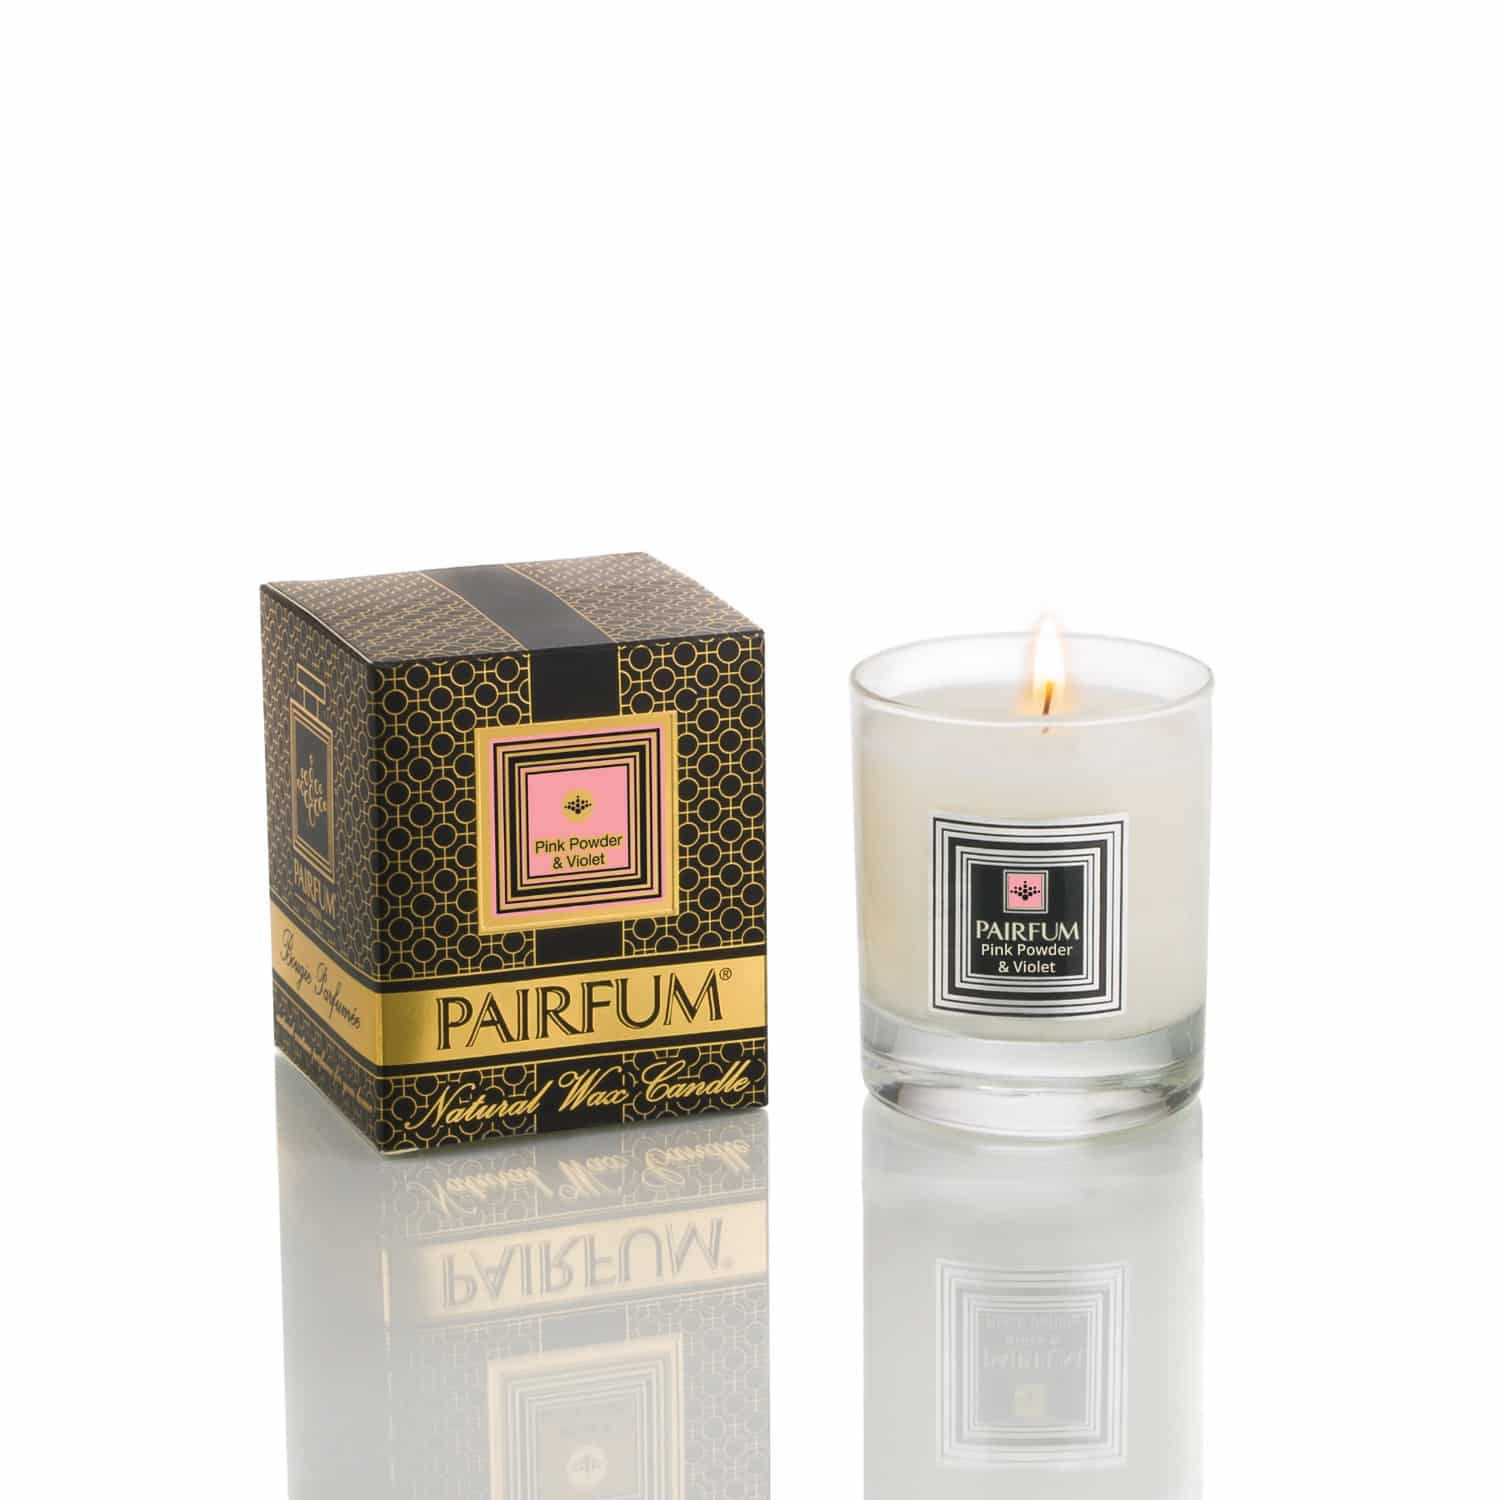 Natural Flower Amp Soy Wax Candles By Pairfum